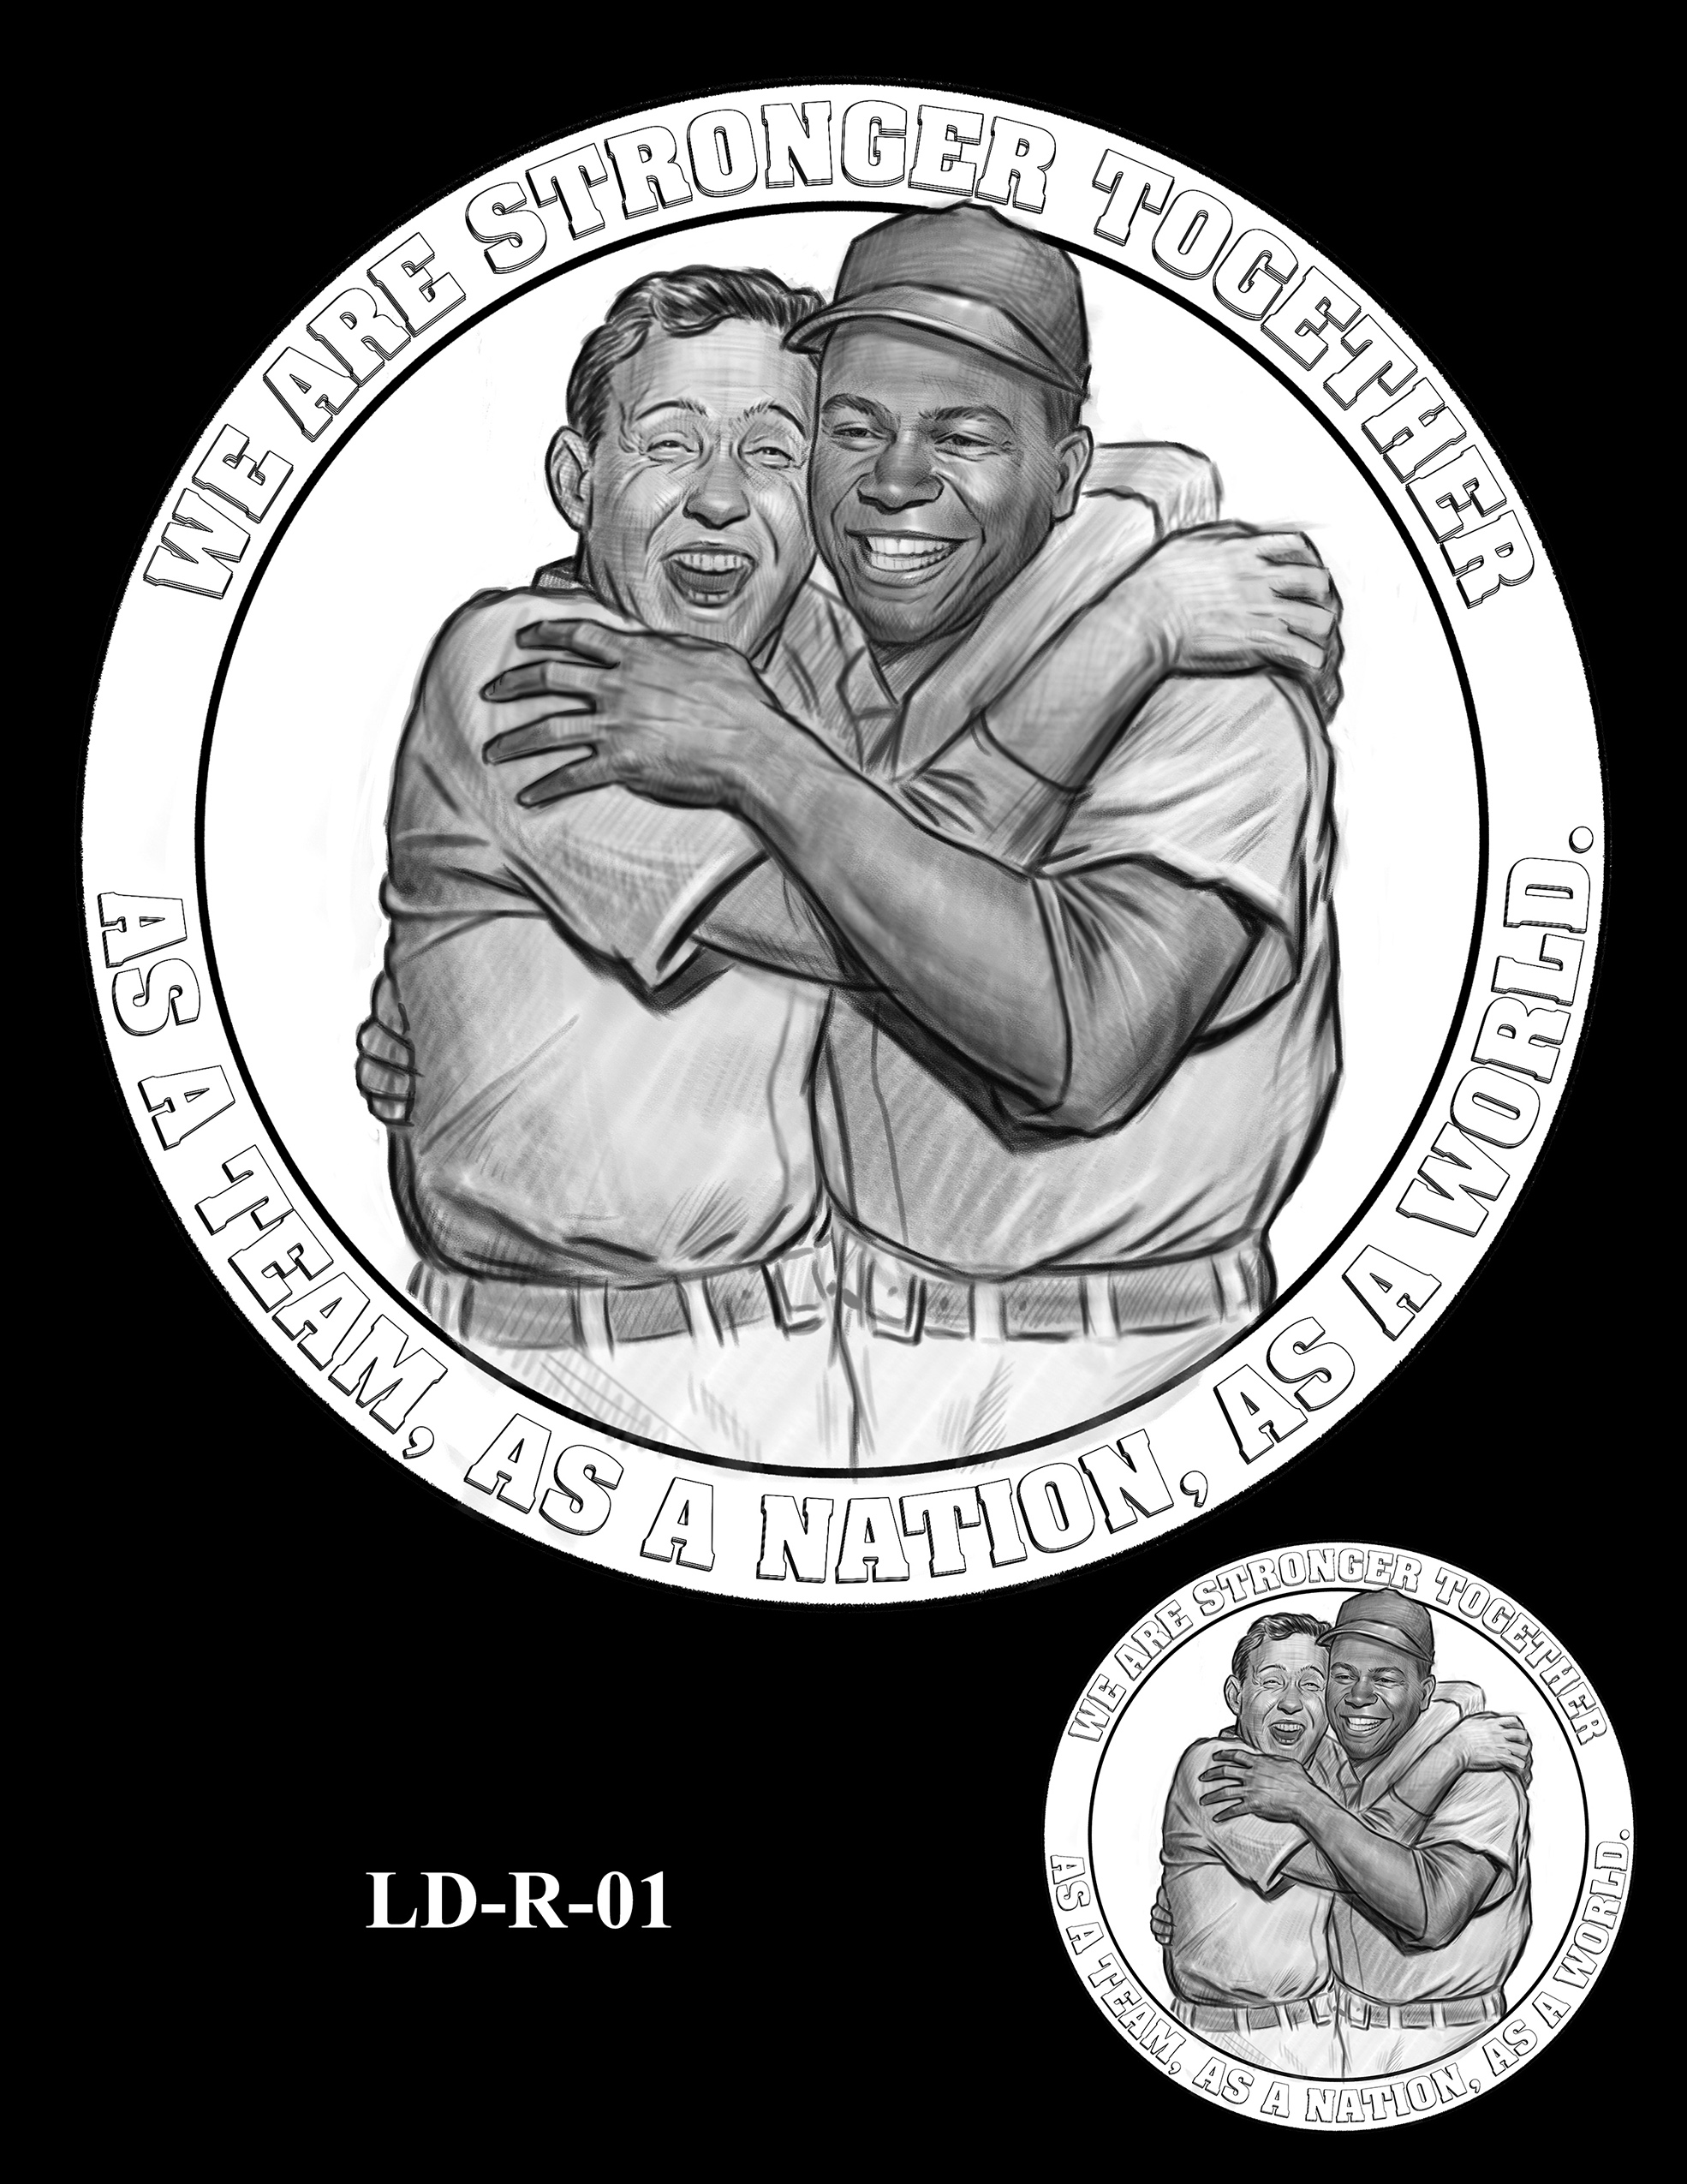 LD-R-01 -- Larry Doby Congressional Gold Medal